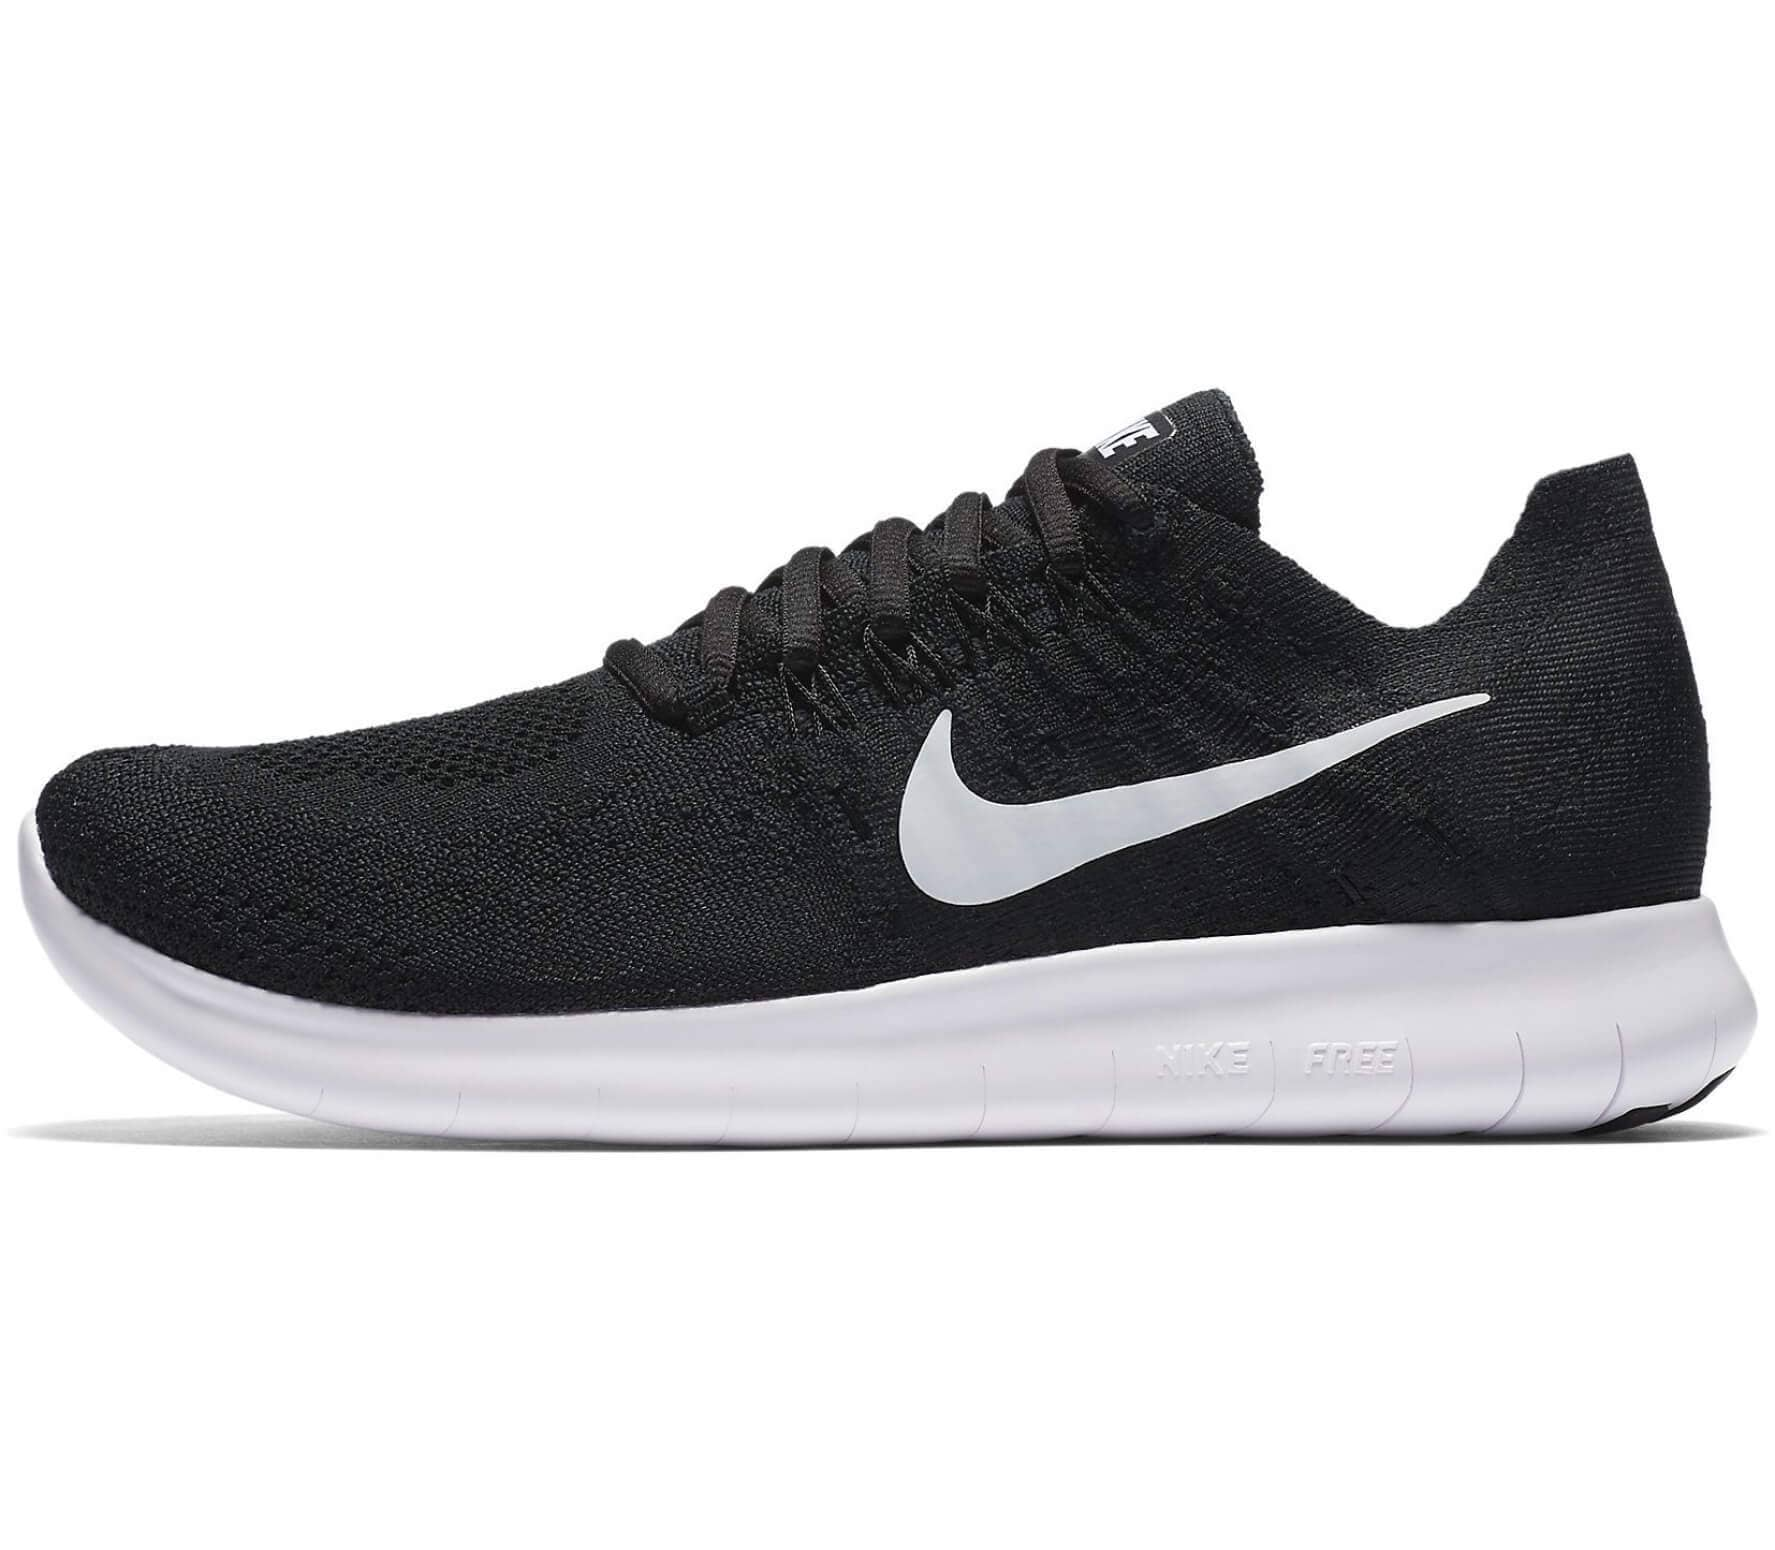 huge discount e1963 4b61e Nike - Free RN Flyknit 2 women s running shoes (black white)